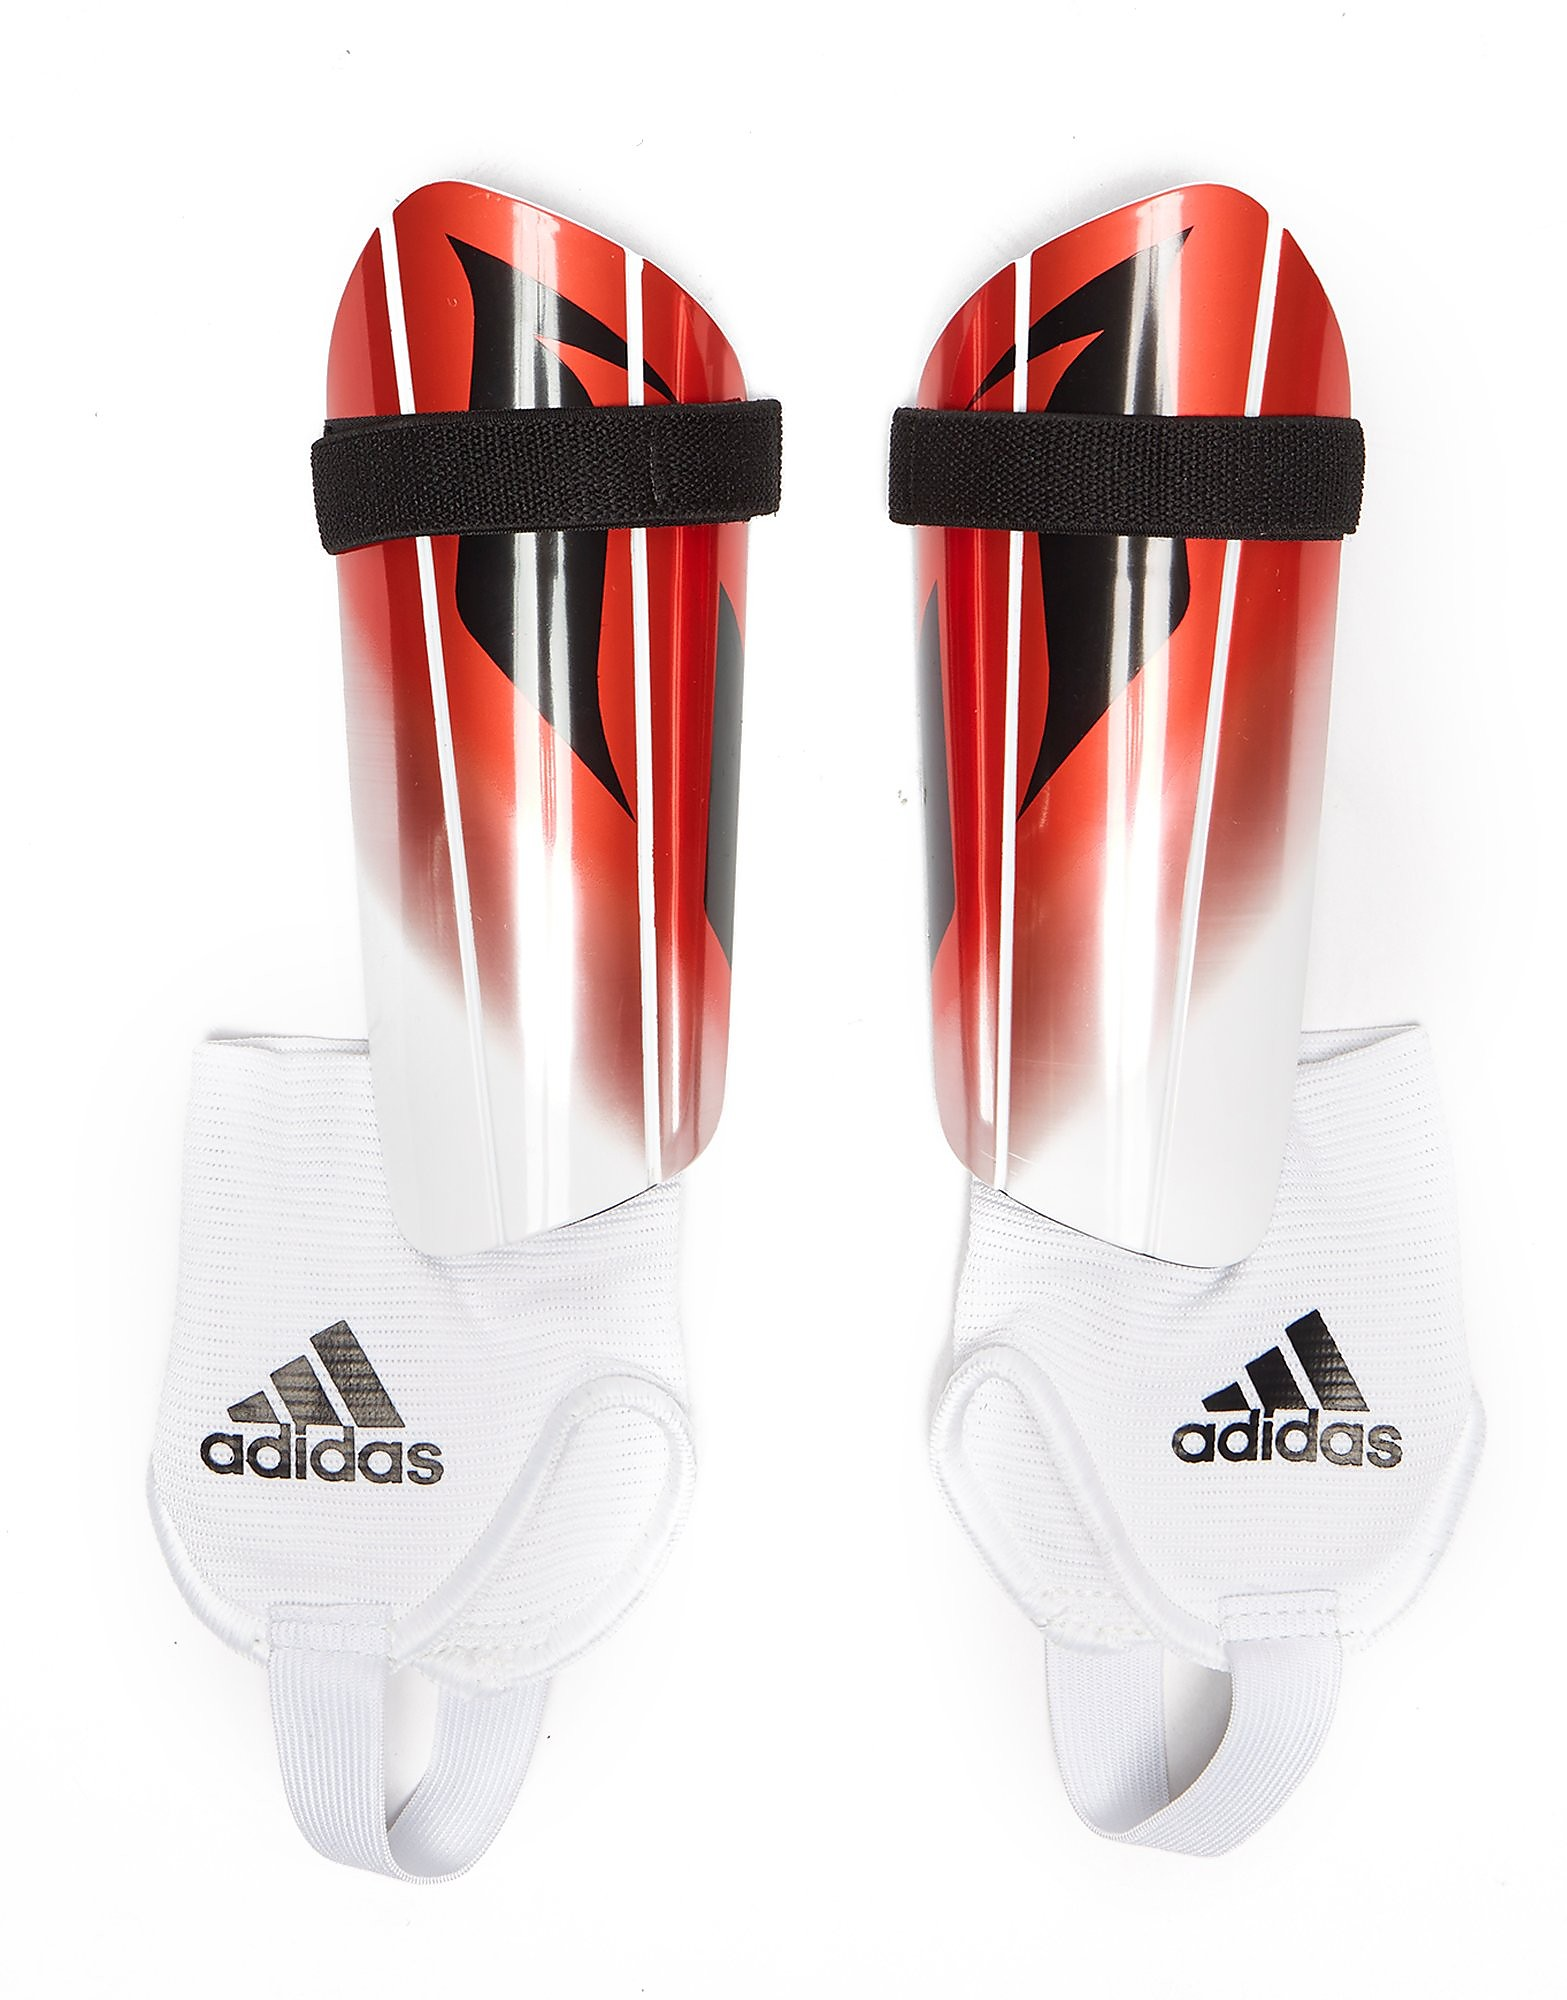 adidas Messi 10 Youth Shin Guards